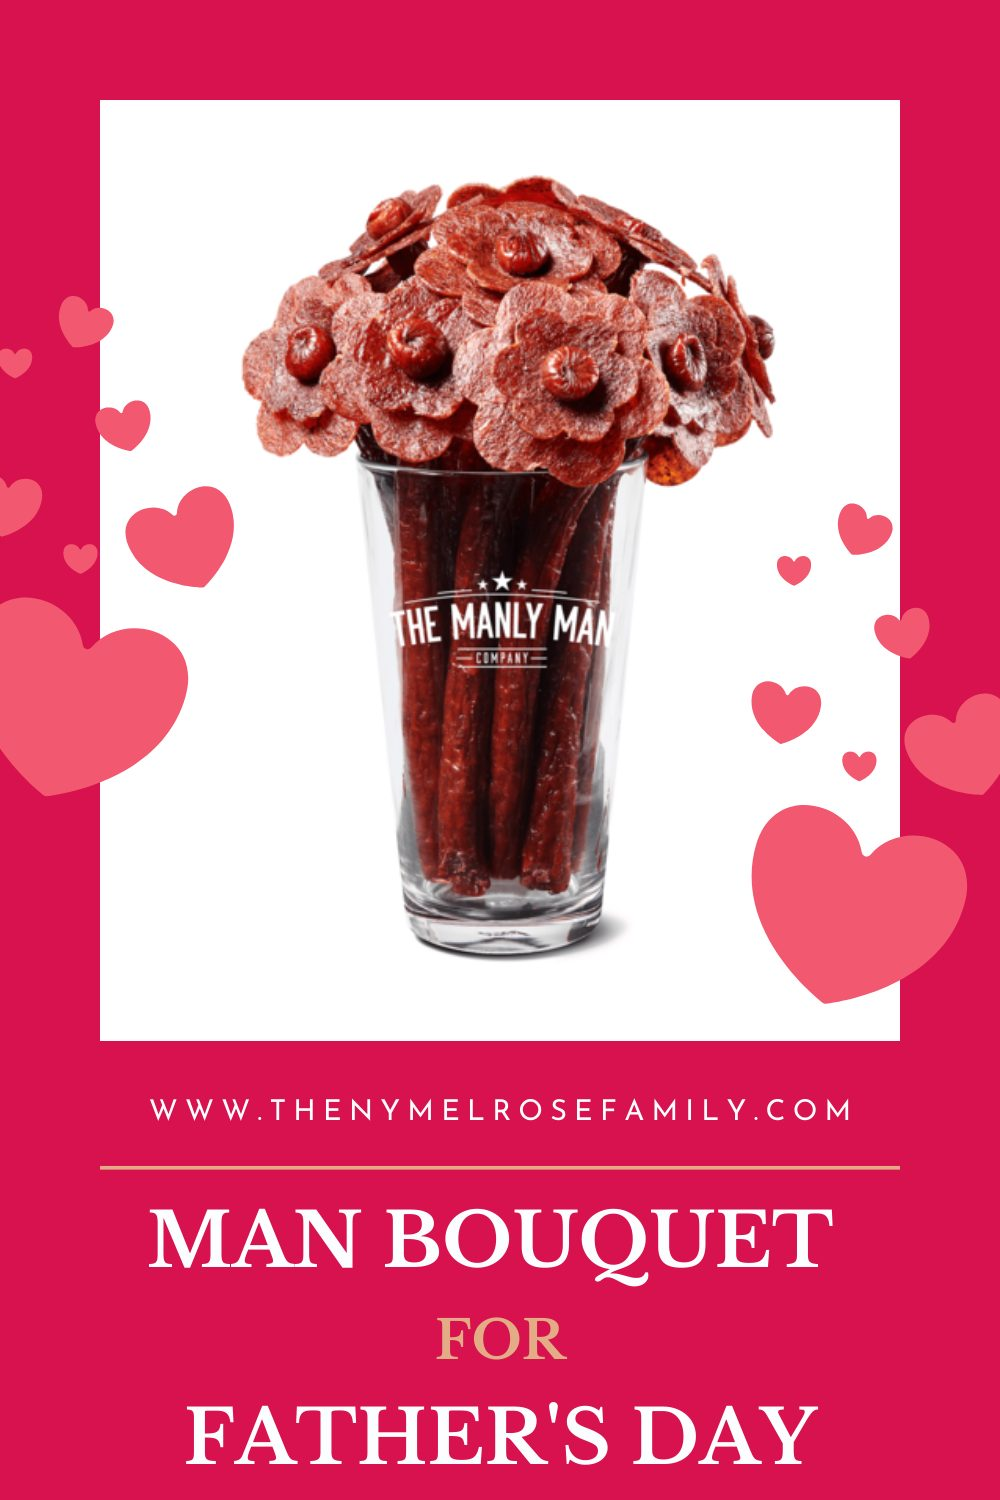 Looking for the perfect Father's Day gift that is both attractive and useful? Look no more! This Man Bouquet is the best Father's Day gift idea that will WOW your man. #manbouquet #fathersdaygift #fathersday #giftideas #nymelrosefamily via @jennymelrose